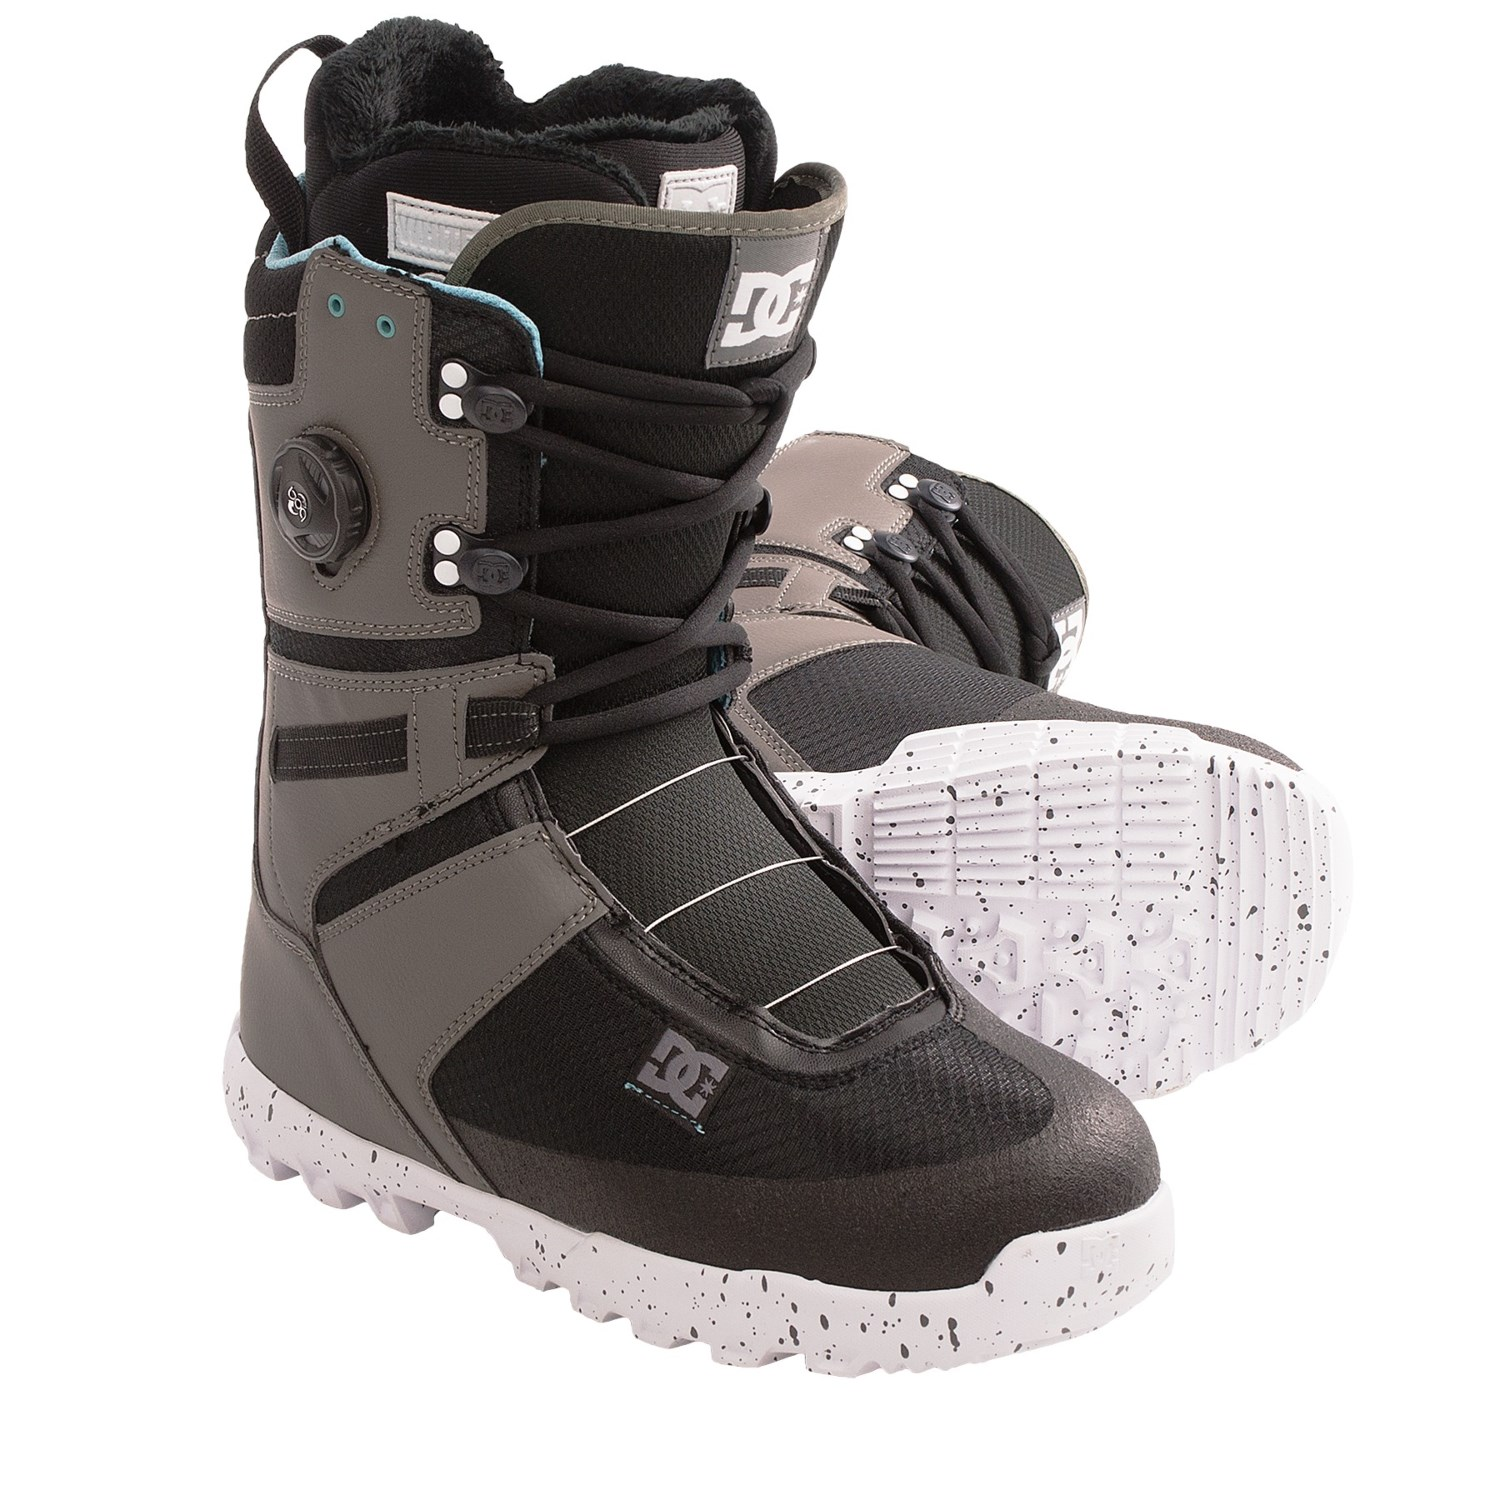 Dc Shoes Men S Gizmo Snowboard Boots